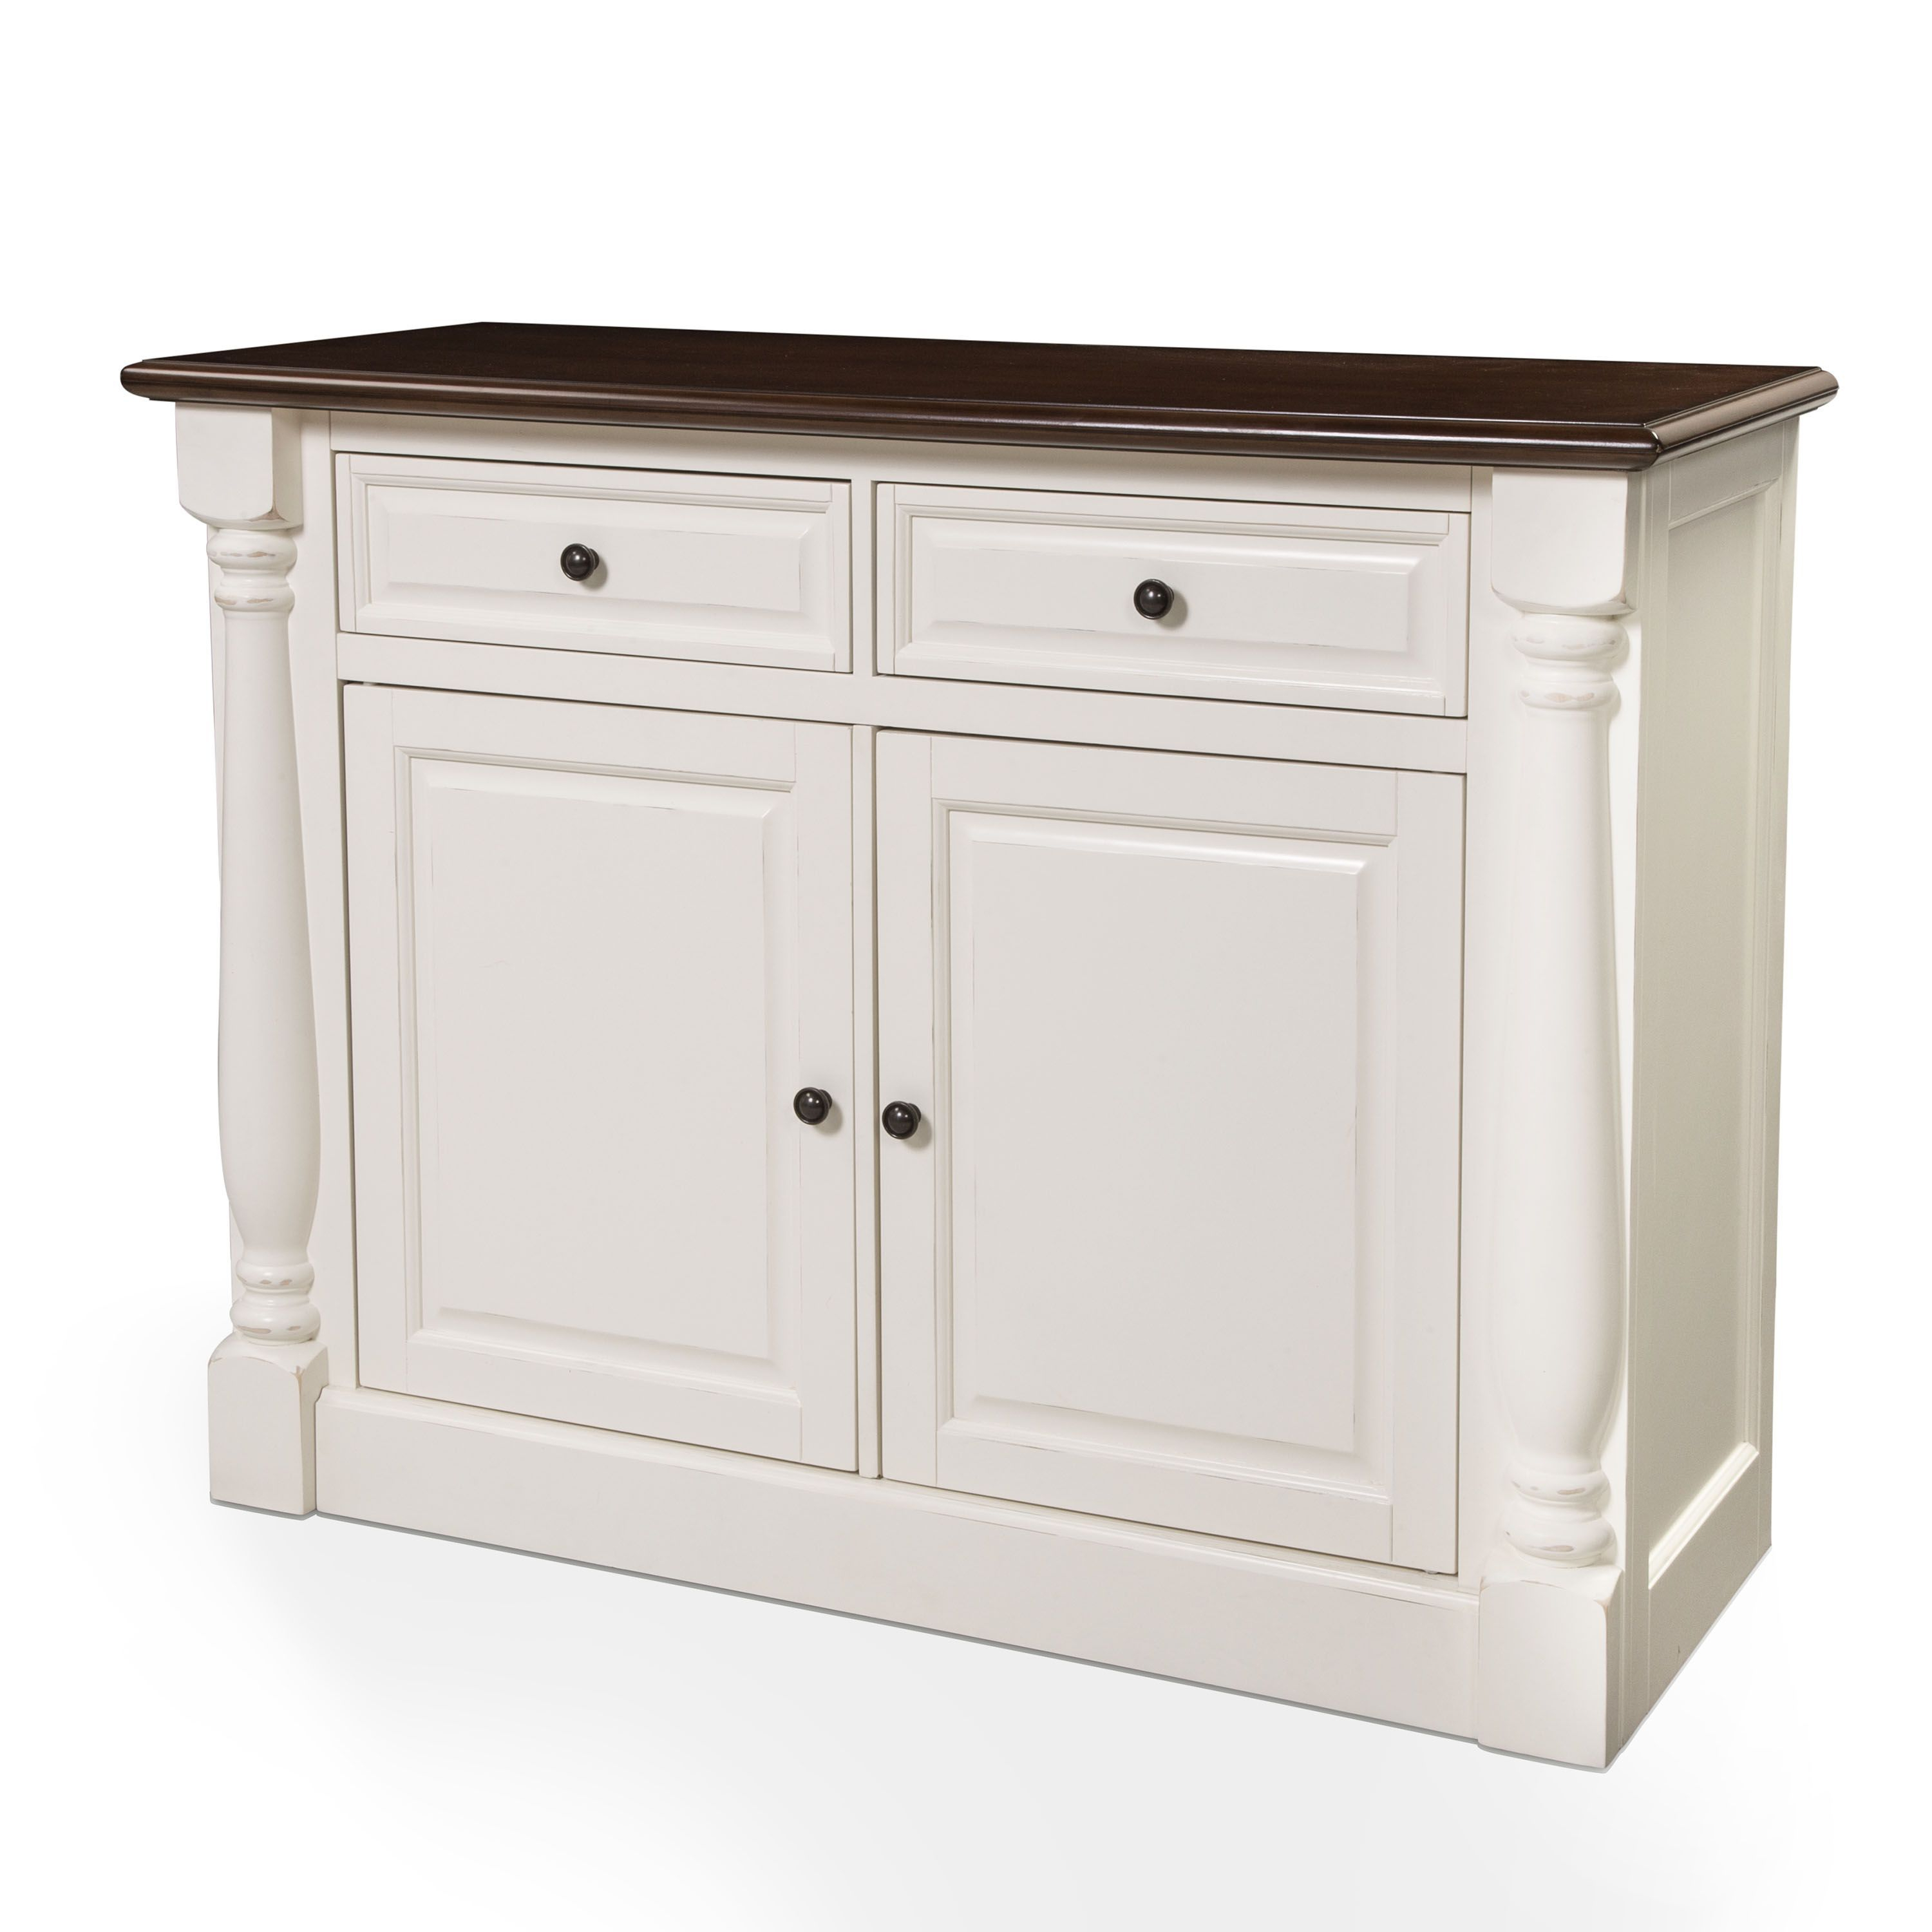 Fingerhut - Crosley Shelby Buffet | Farmhouse | Buffet throughout Amityville Wood Sideboards (Image 21 of 30)